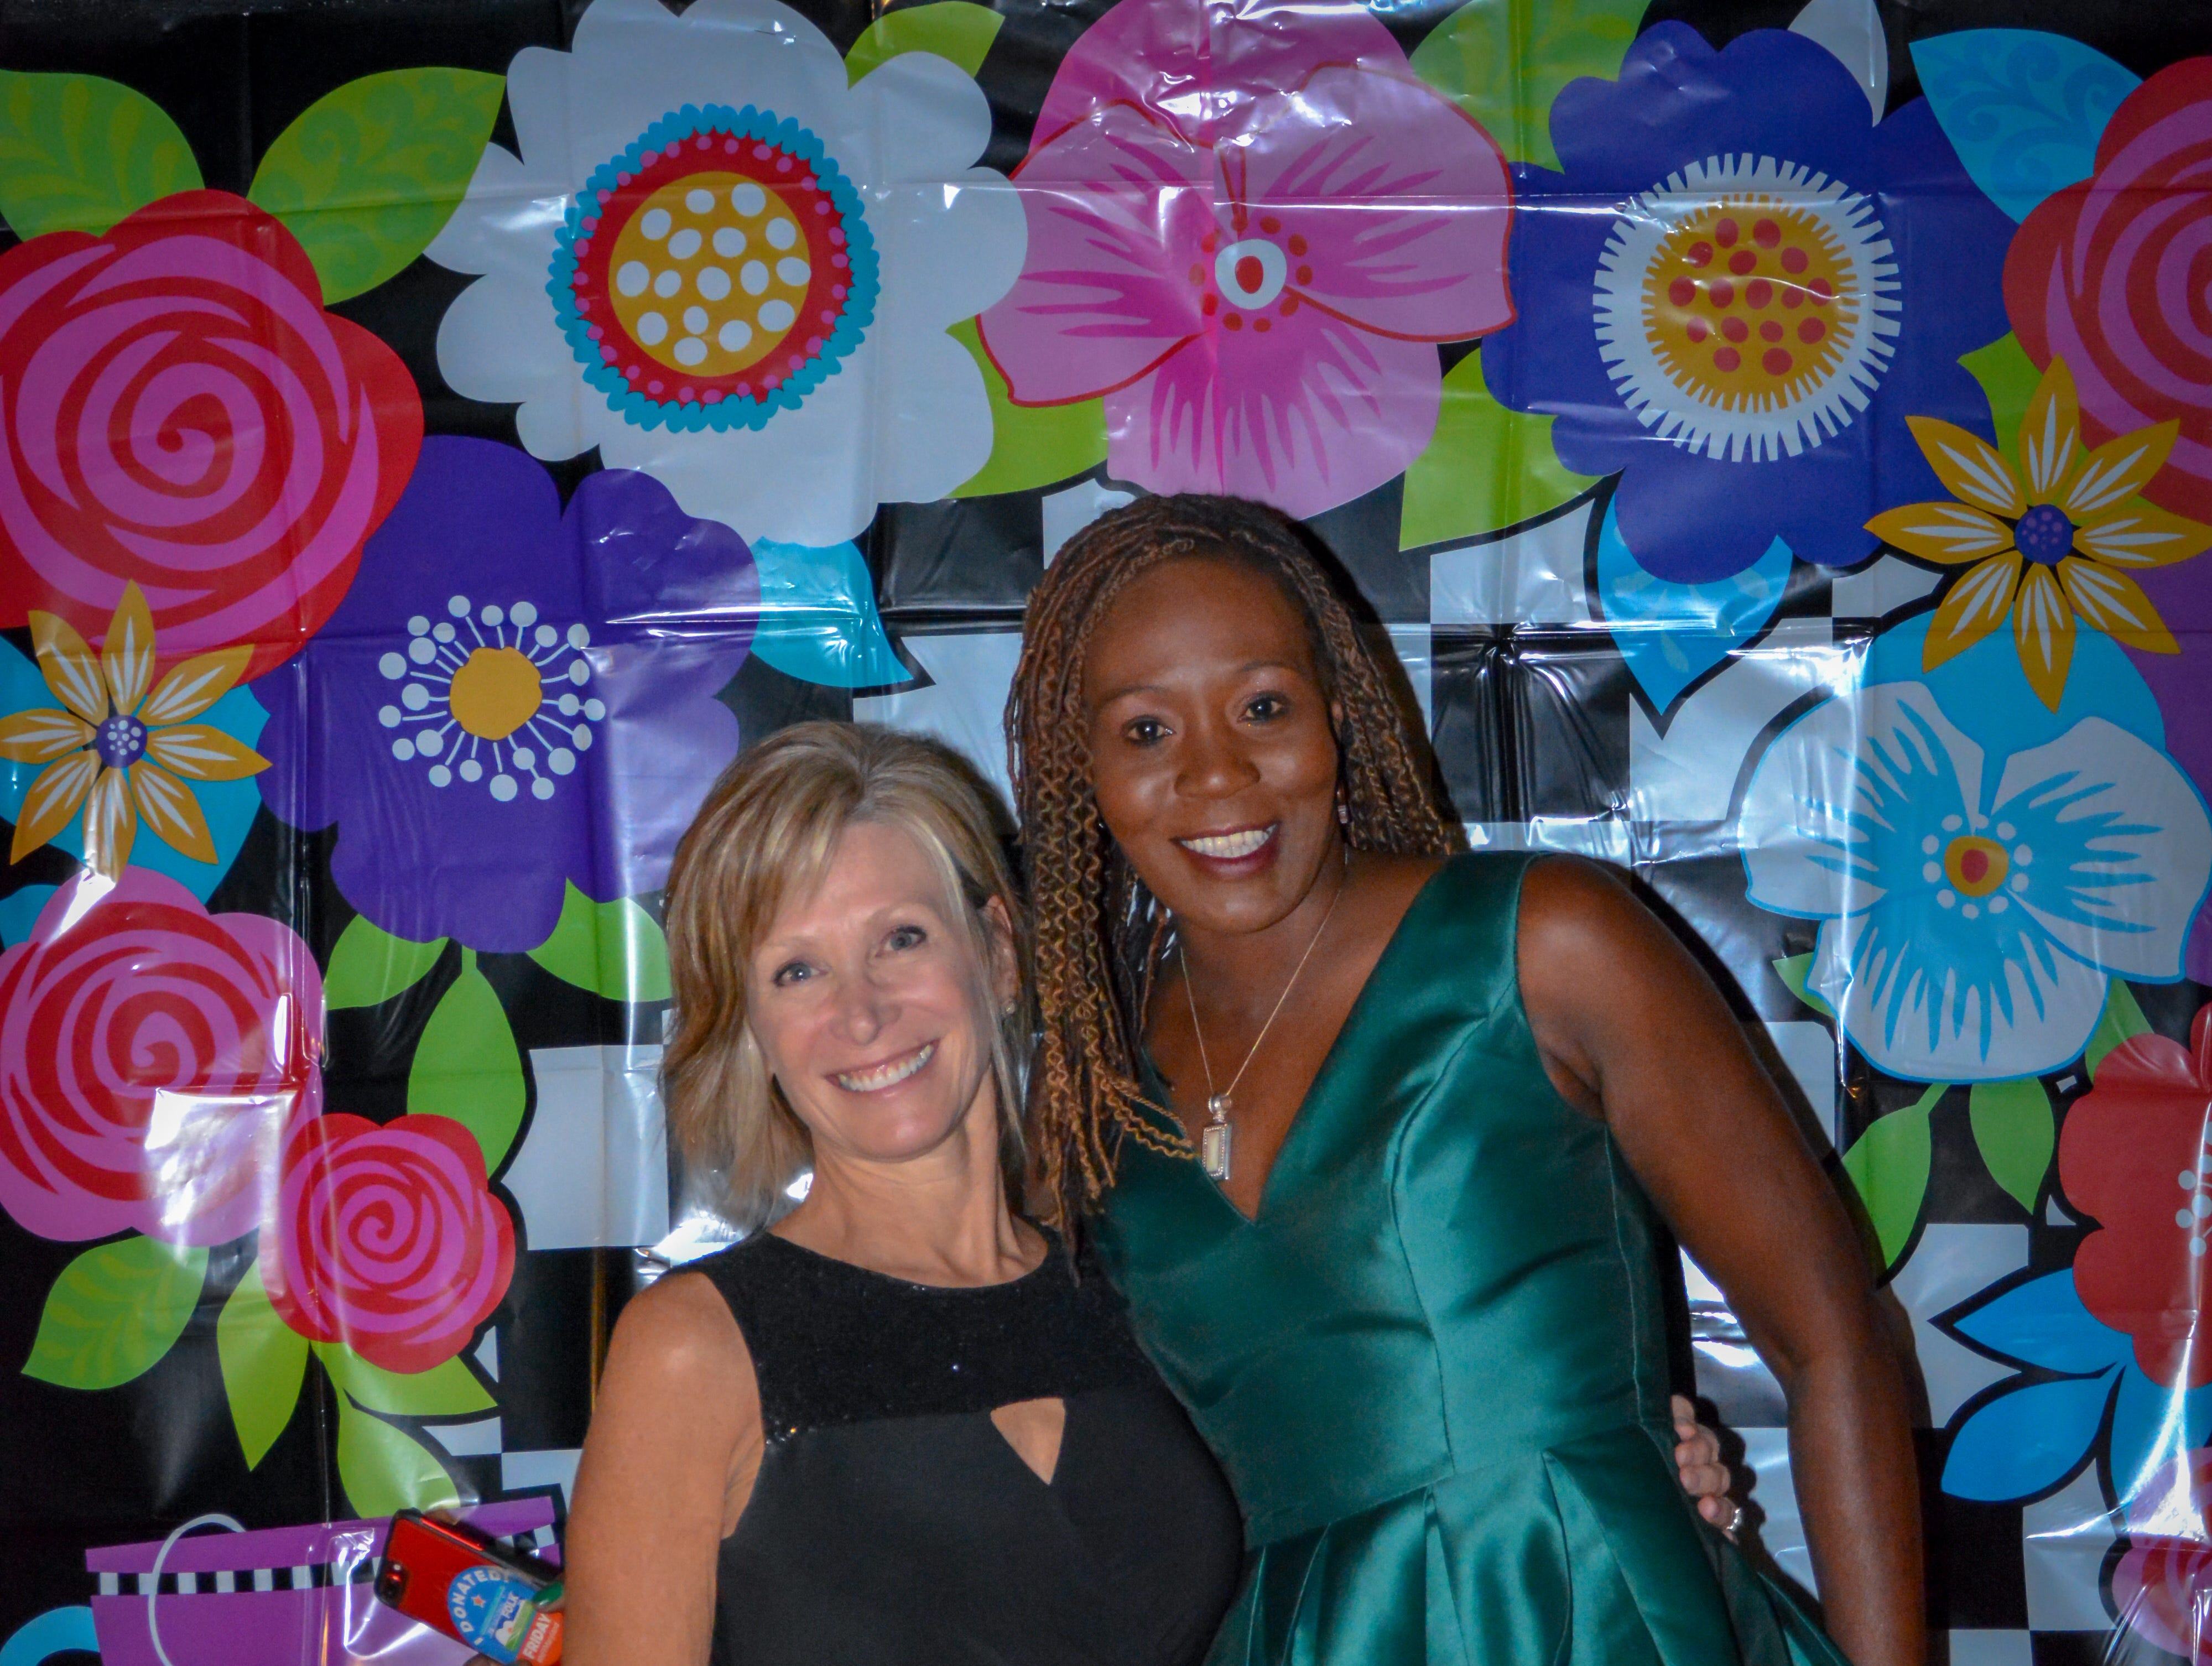 """Wicomico County Circuit Court Judge Kathleen Beckstead, (left) and Shawn Kearstey, board member, pose for a quick picture at the Minds in Motion Museum """"A Wonderland Adventure Gala"""" on Nov. 3, 2018, the Wicomico Youth & Civic Center in Salisbury, Maryland."""